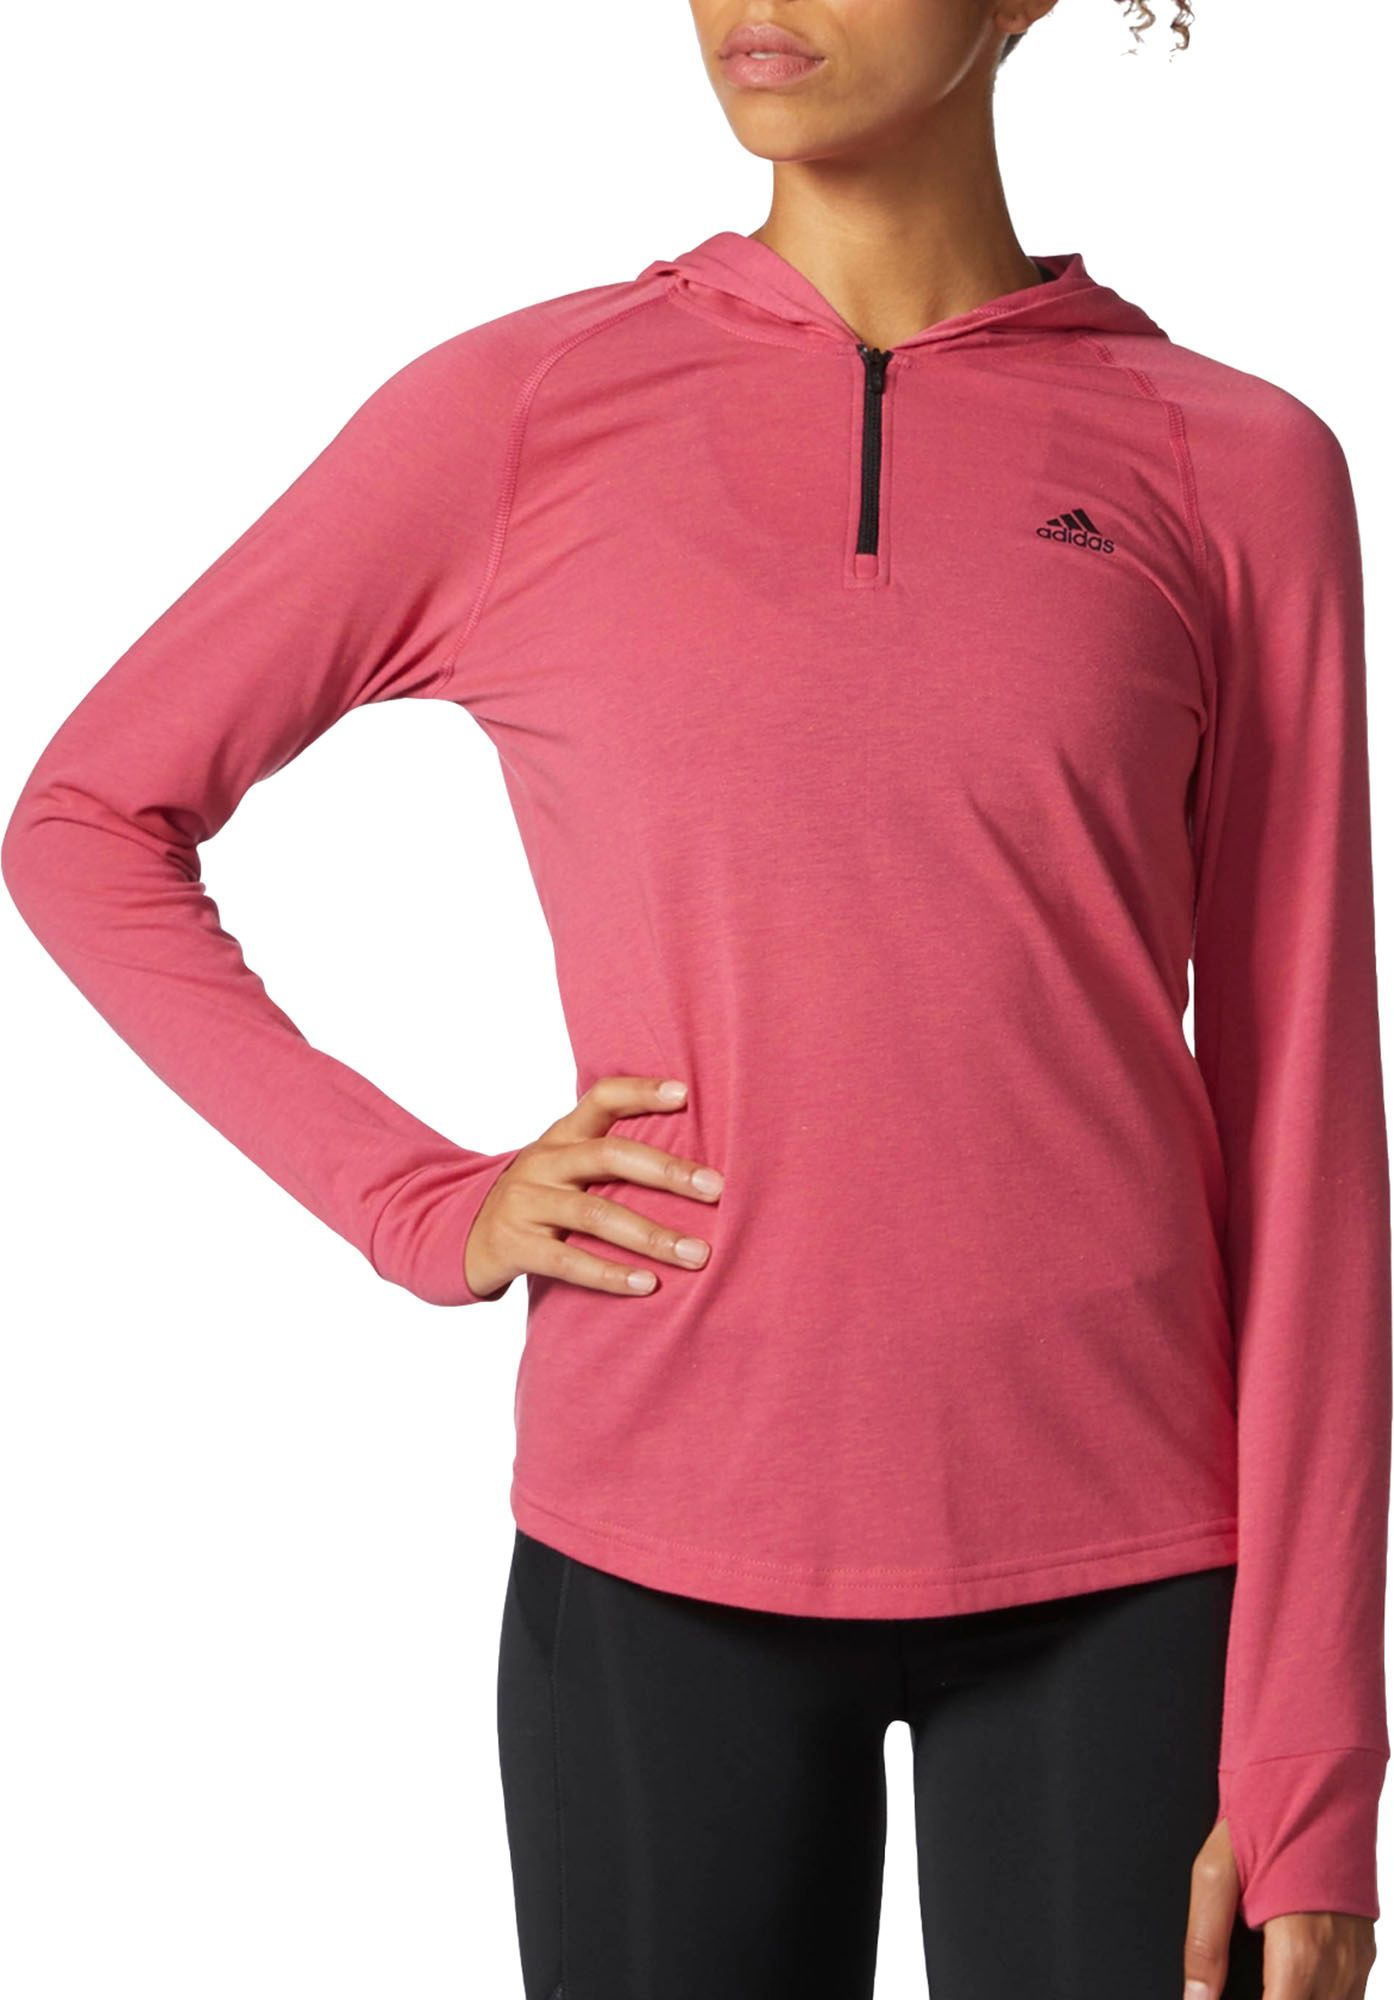 Adidas Women's Ultimate 1/4 Zip Hooded T Shirt by Adidas